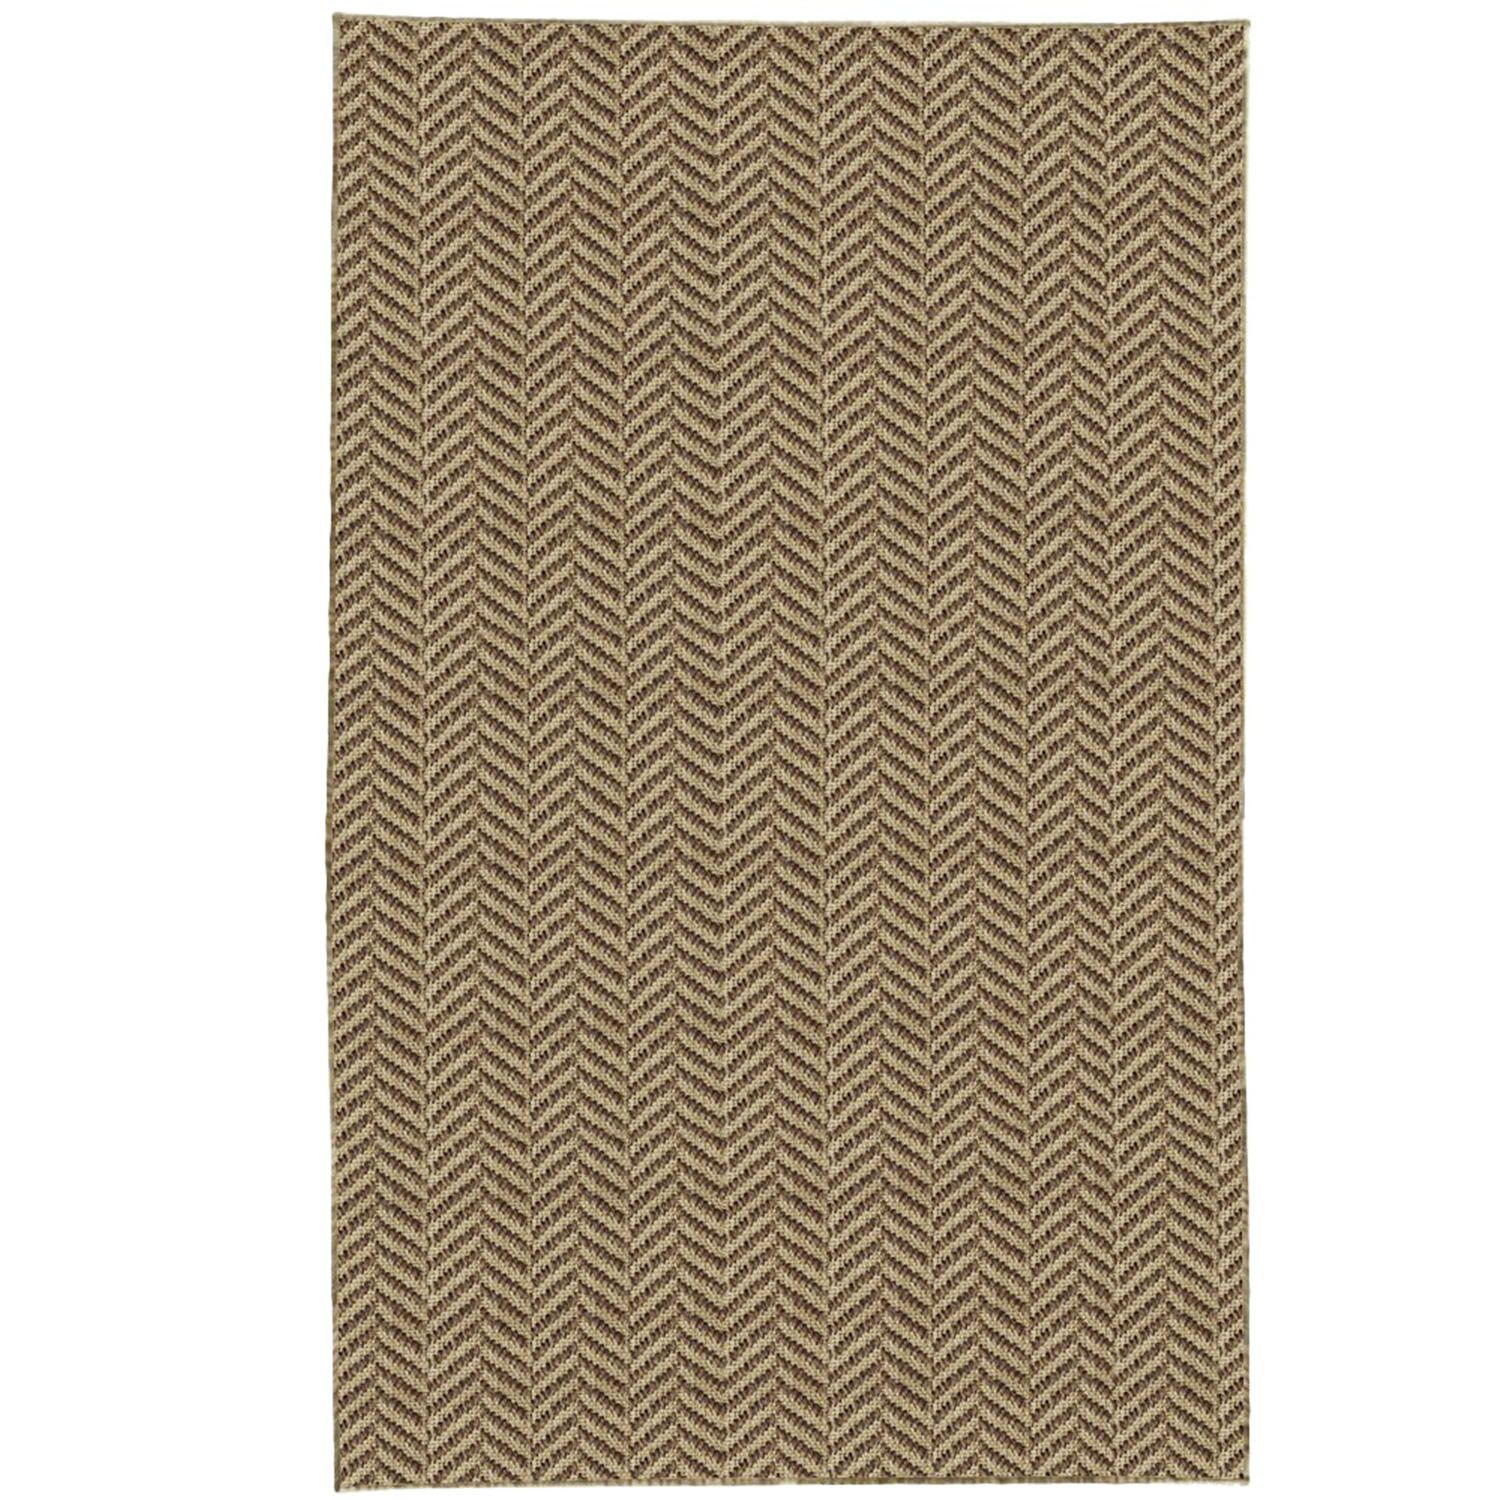 Paige Brown Area Rug Rug Size: 8' x 10'